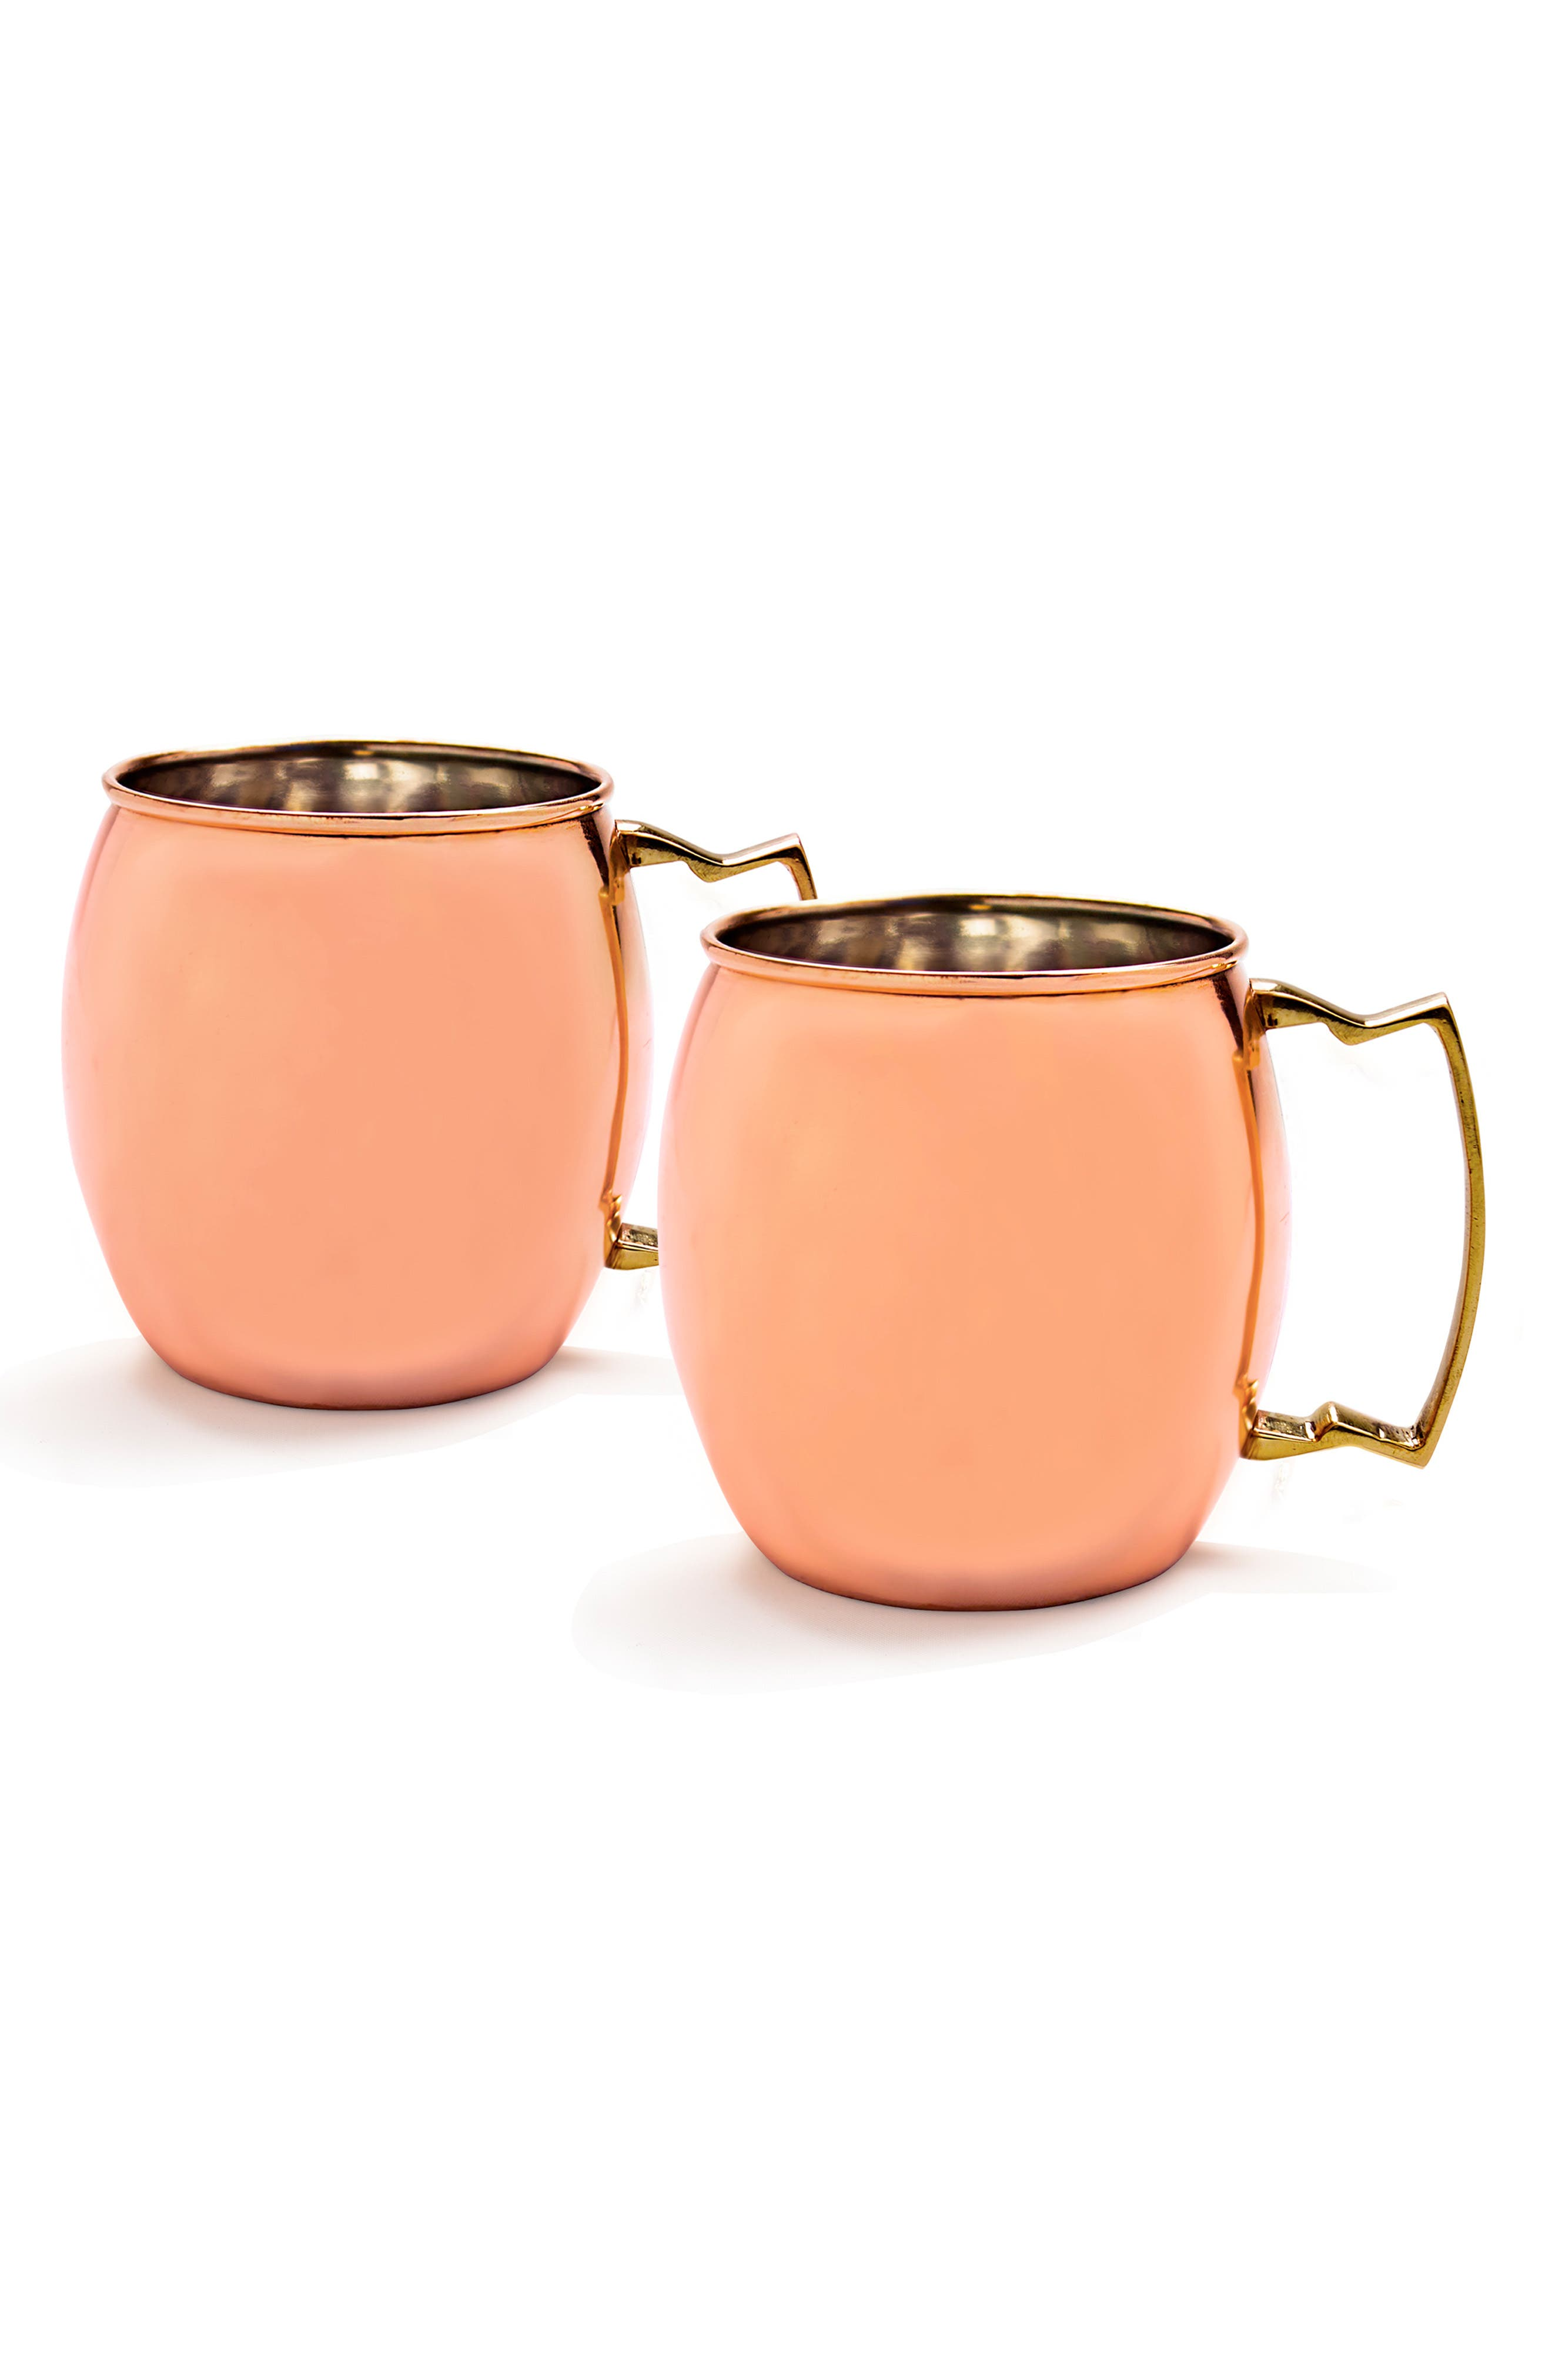 CATHY'S CONCEPTS Monogram Moscow Mule Copper Mugs, Main, color, 220